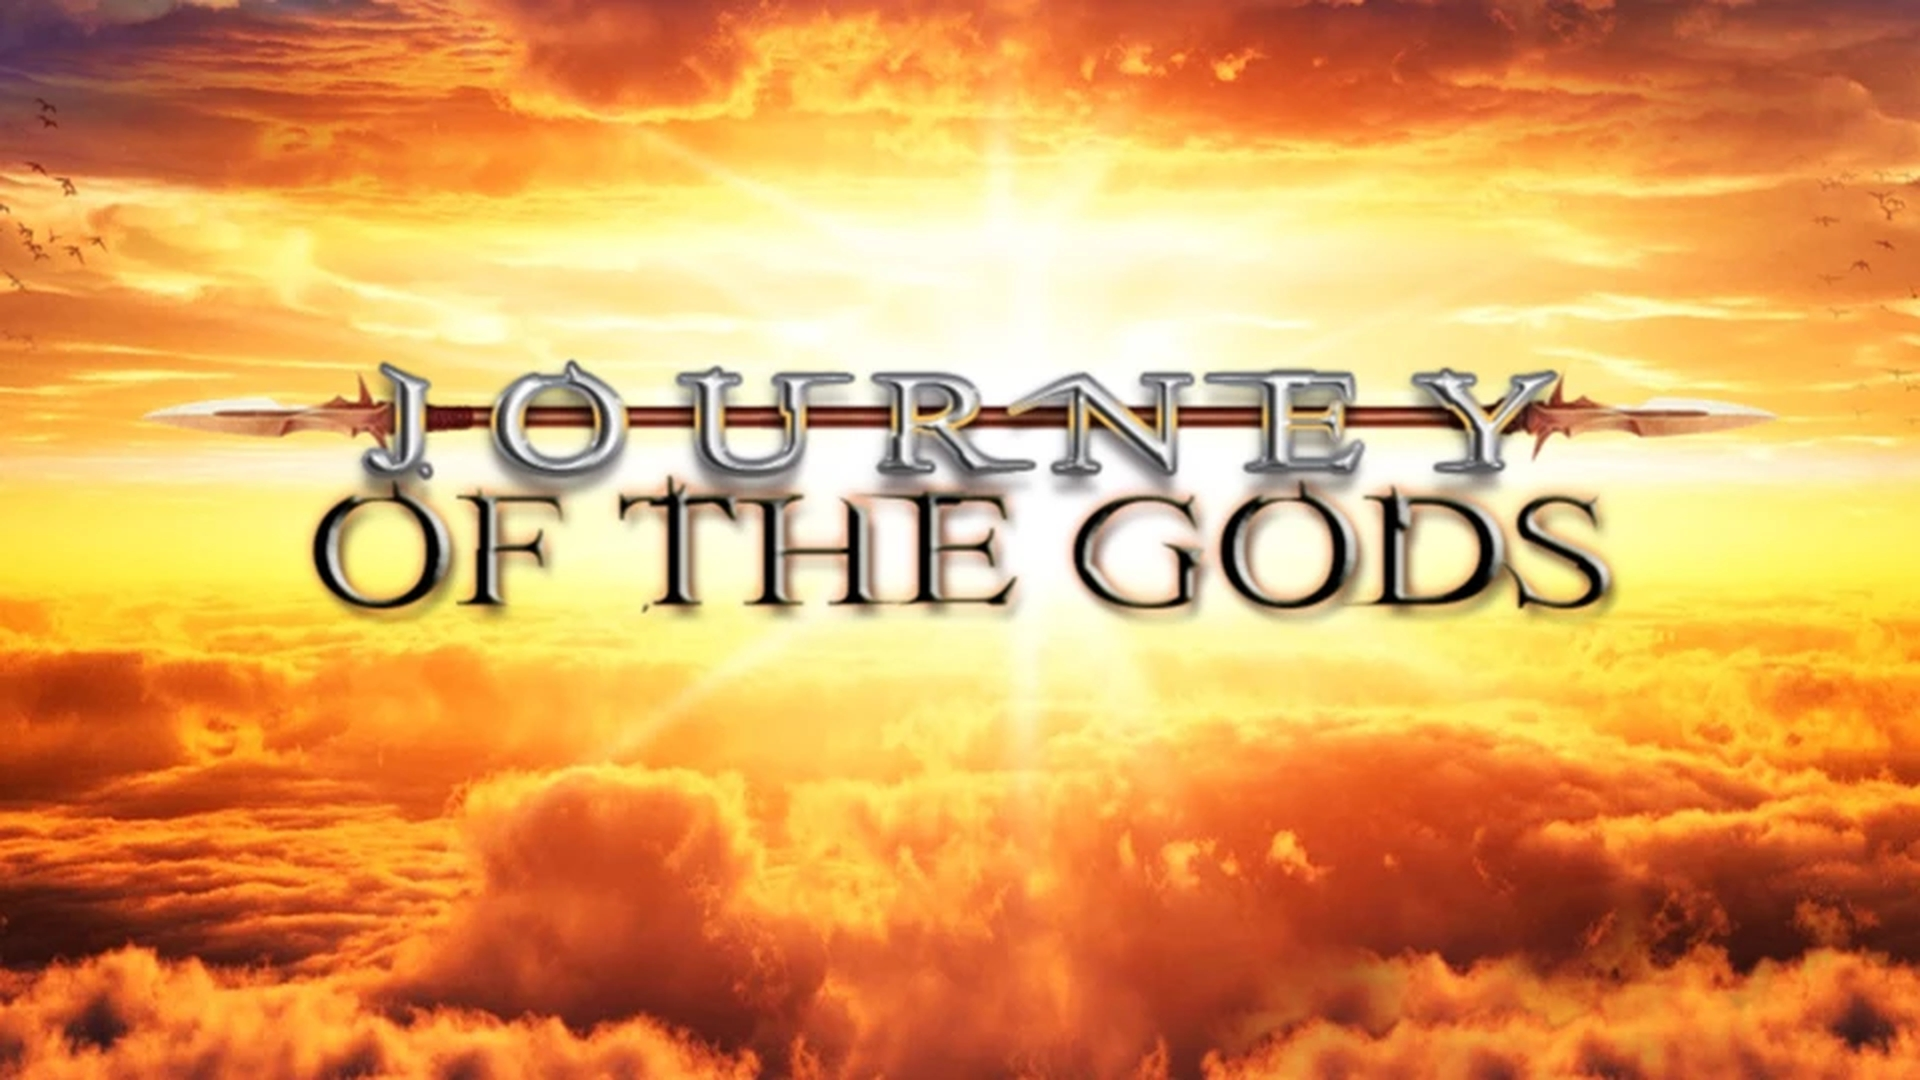 The Journey of the Gods Online Slot Demo Game by Blueprint Gaming